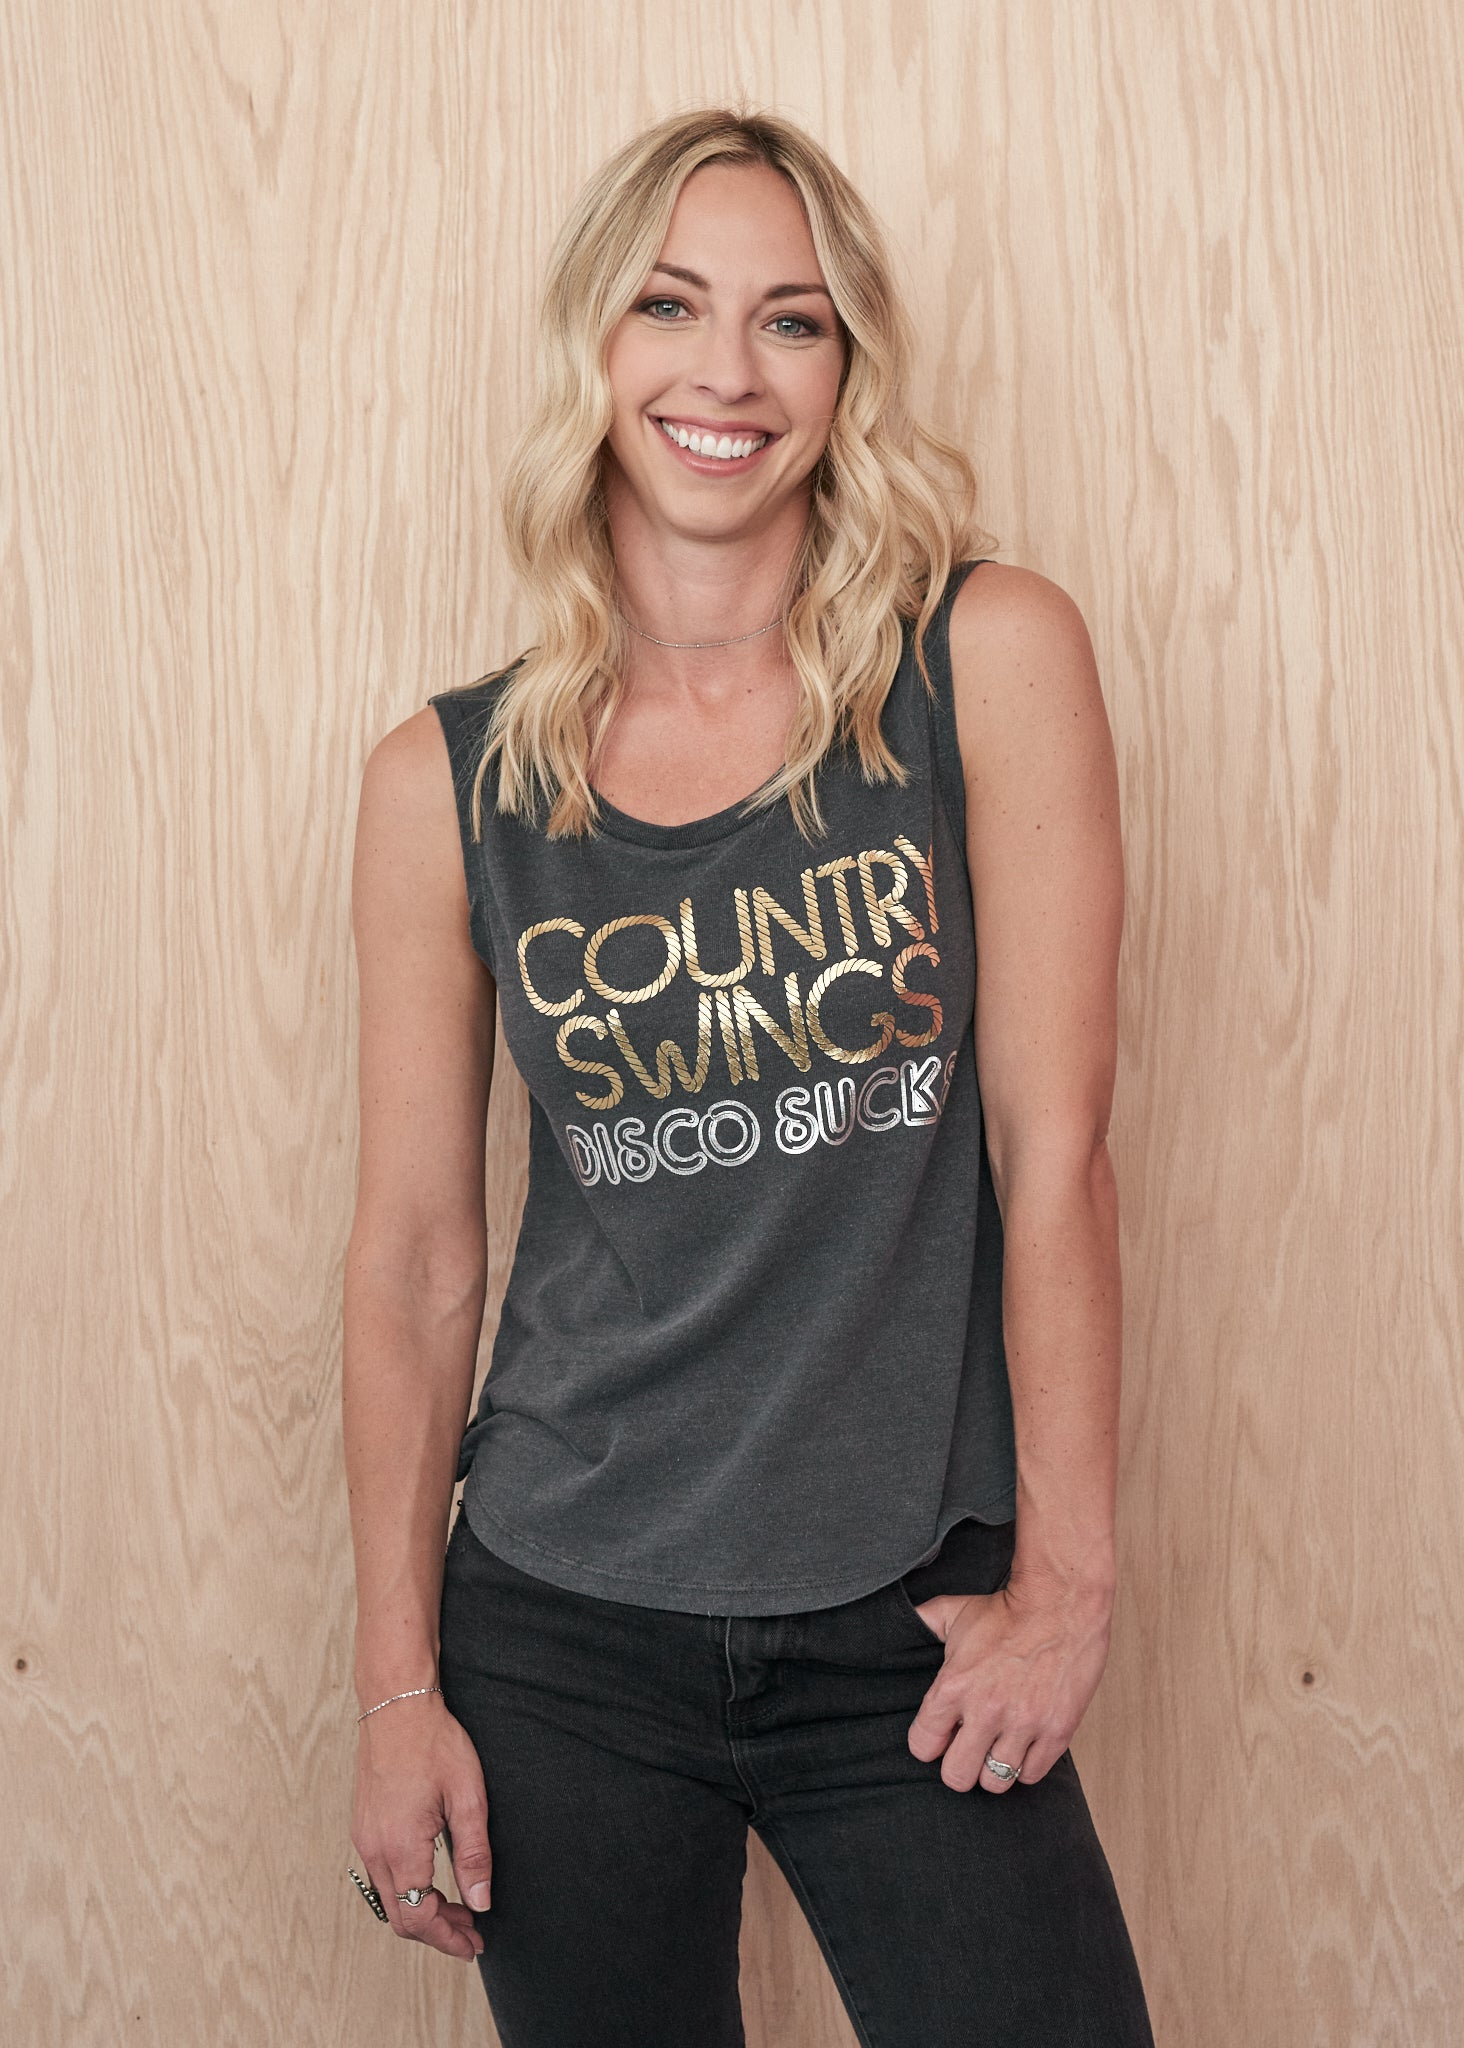 Country Swings Disco Sucks Muscle Tee - Women's Muscle Tee - Midnight Rider